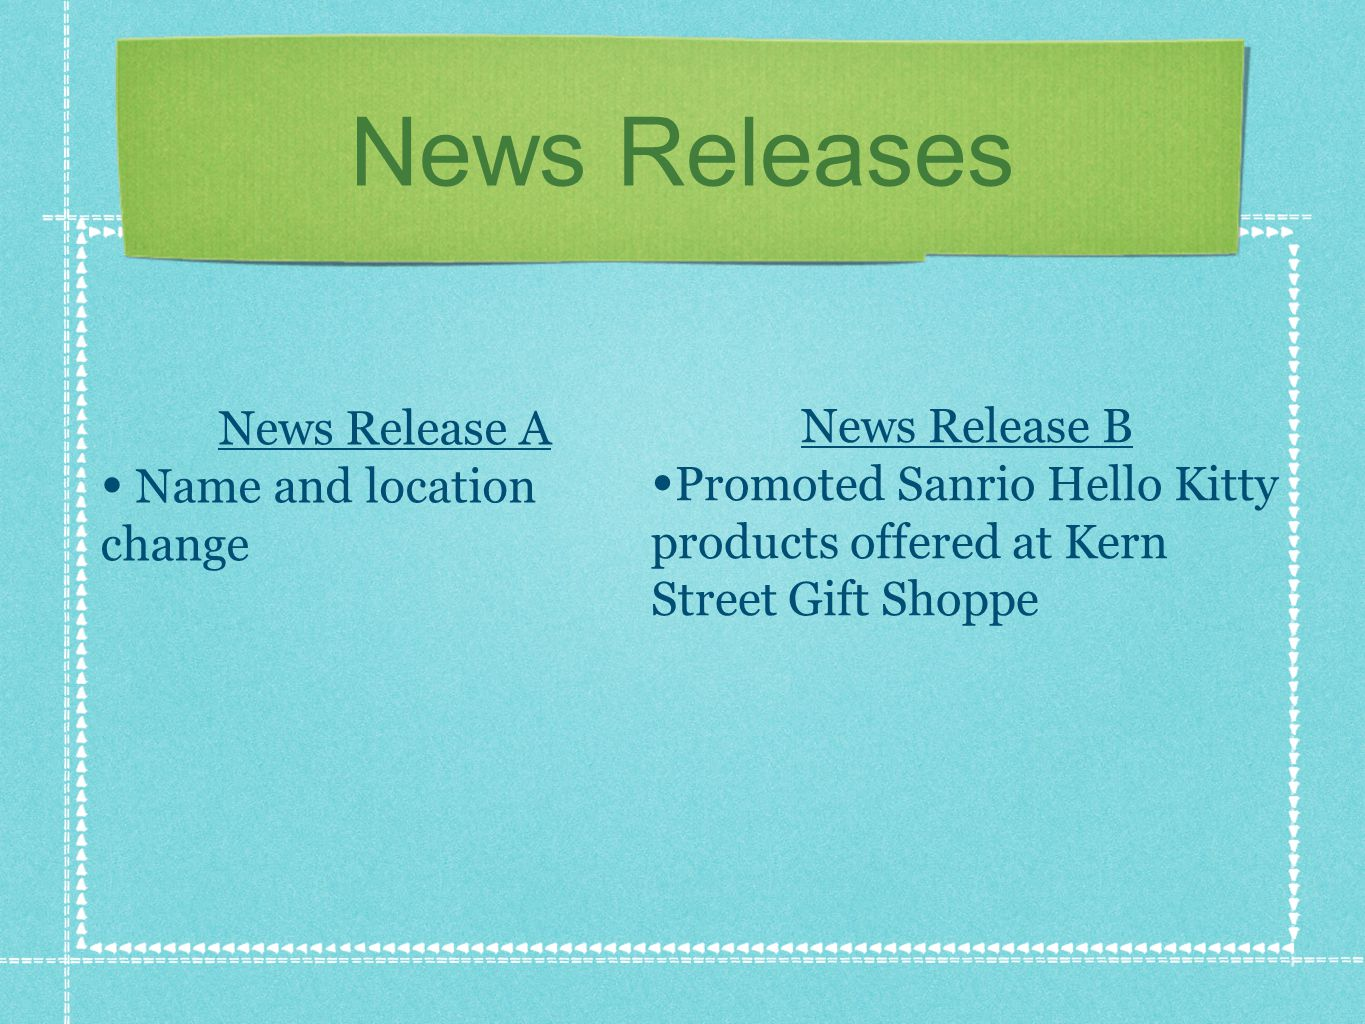 News Releases News Release A Name and location change News Release B Promoted Sanrio Hello Kitty products offered at Kern Street Gift Shoppe